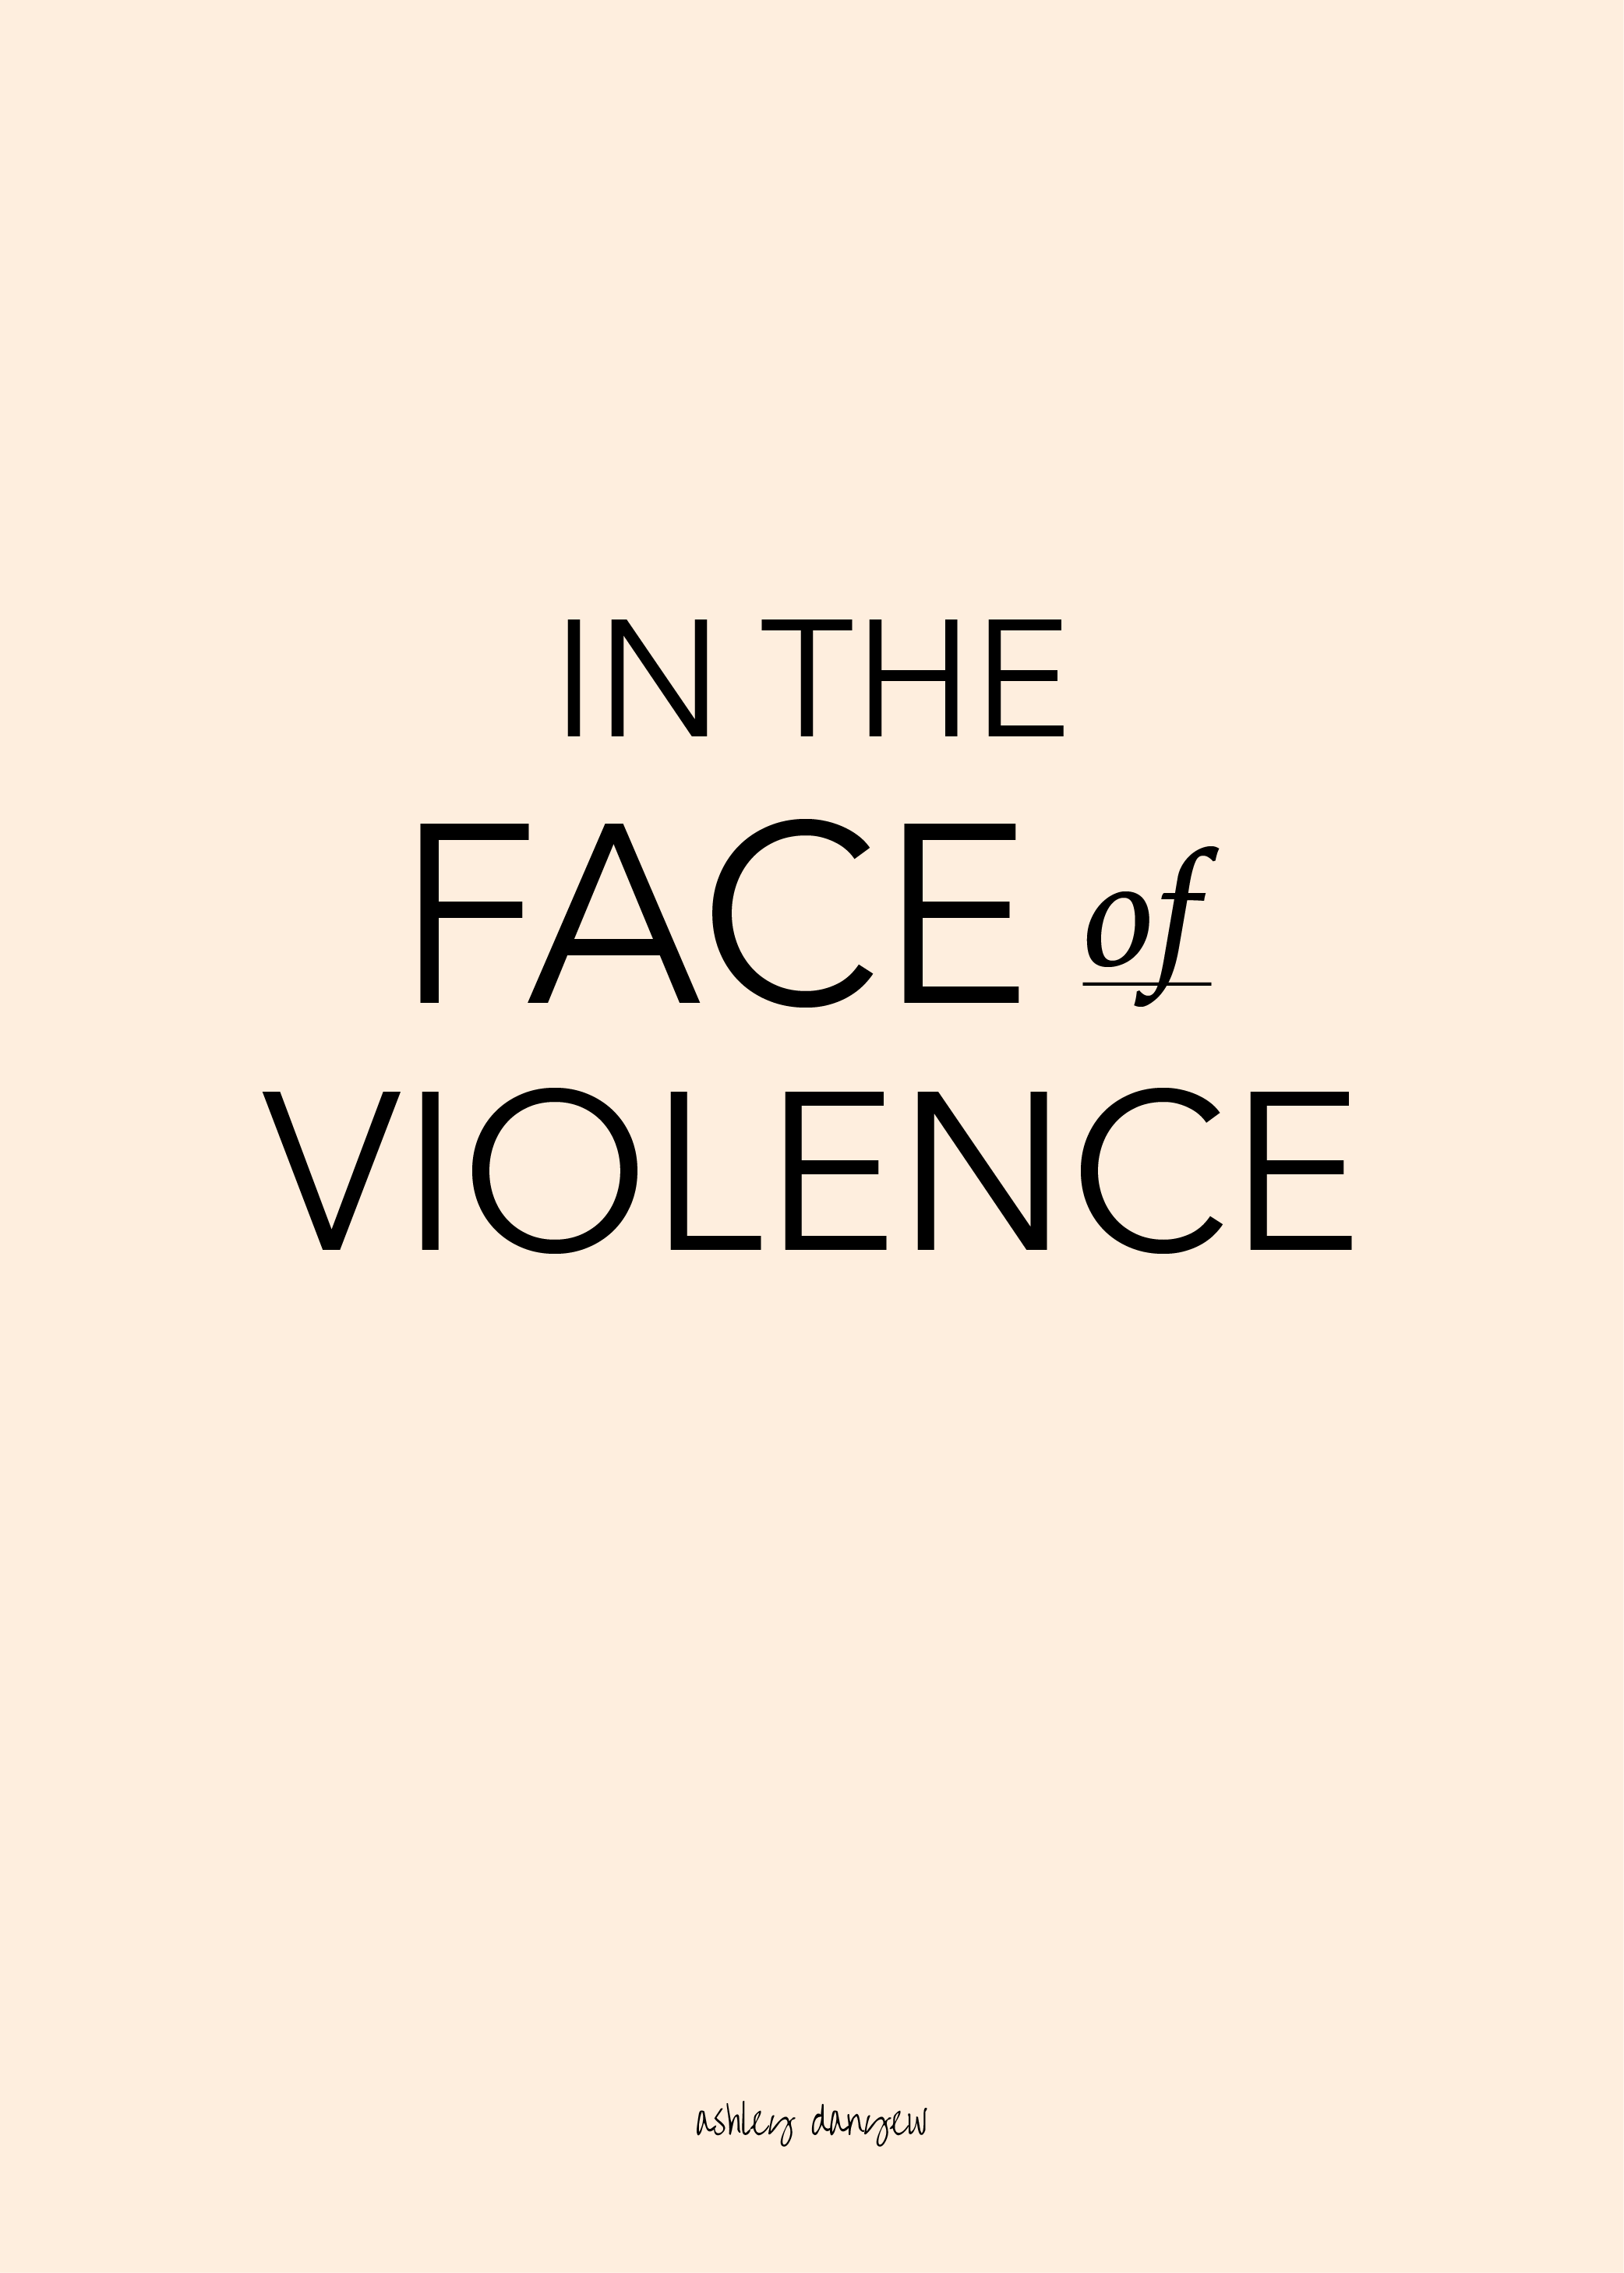 Copy of In the Face of Violence